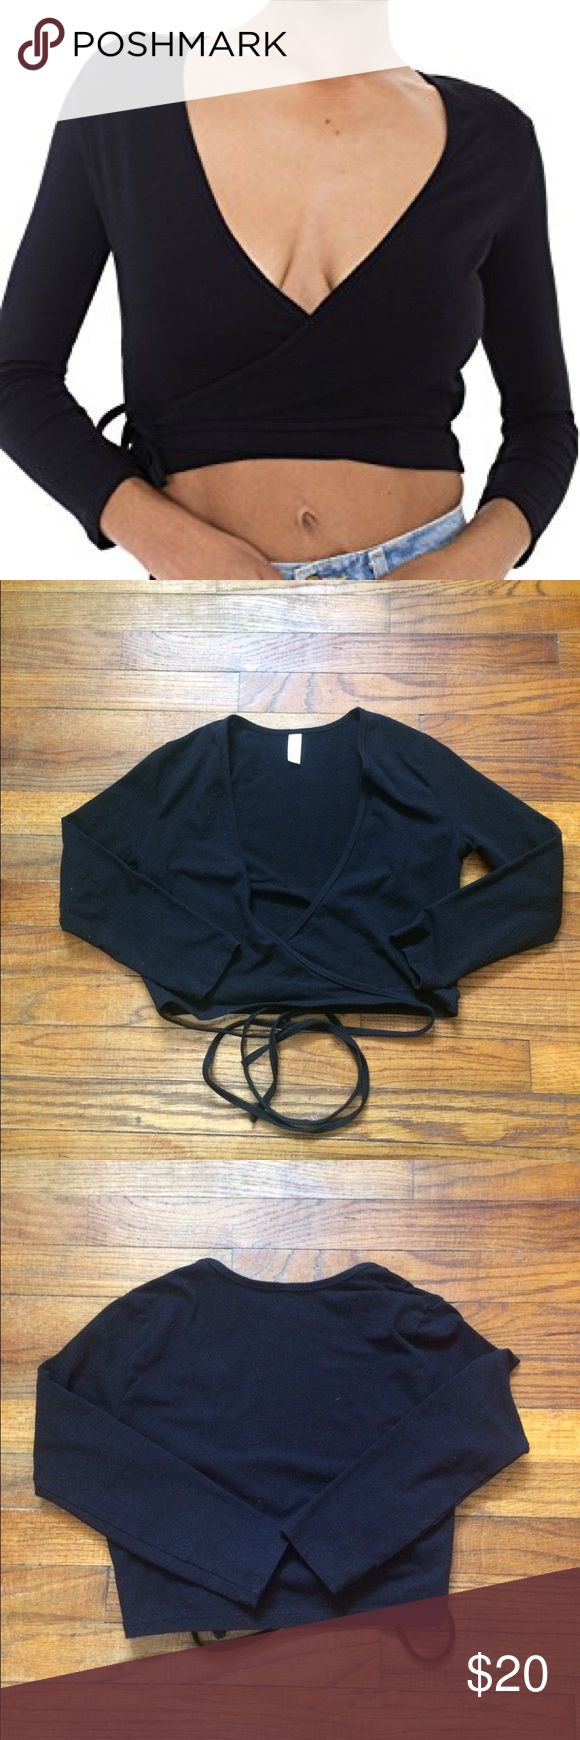 American Apparel Juilliard Wrap Top - Previously loved  - Size S  - No rips/stains/discoloration  - Reasonable offers considered  - No trades - No reserves American Apparel Tops Crop Tops